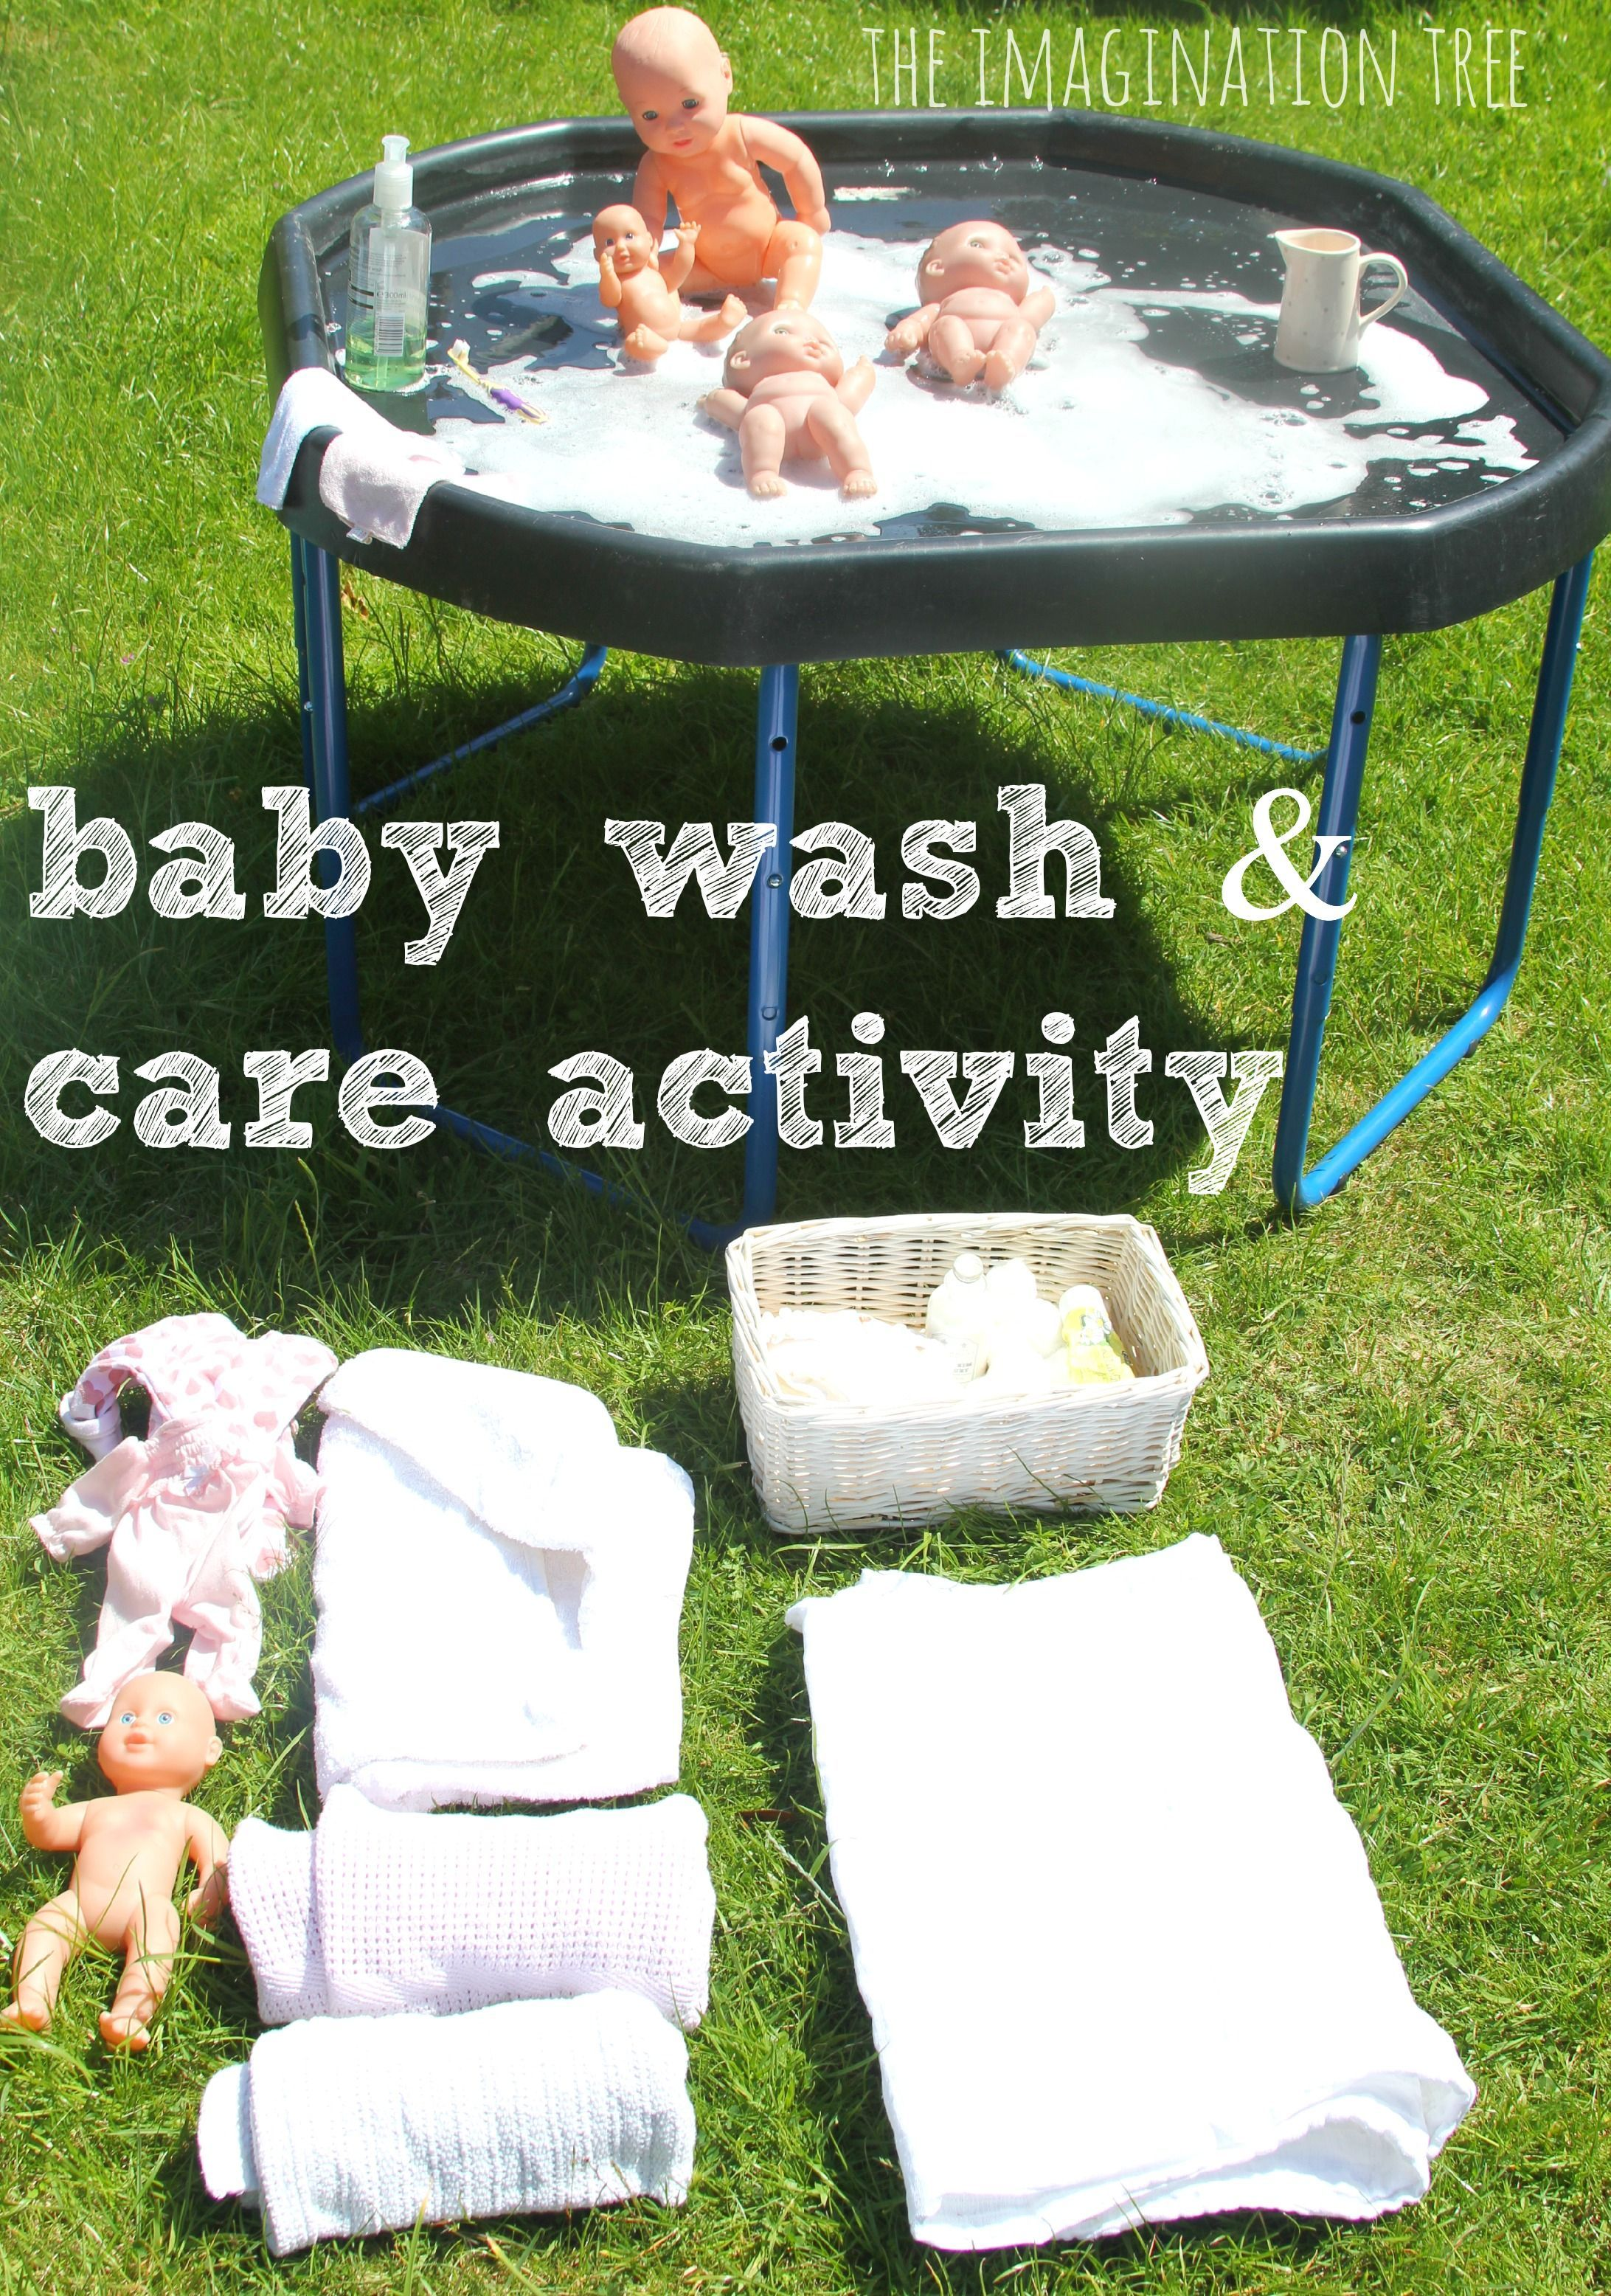 Doll Washing and Caring Activity Set up this fun baby doll washing activity for toddlers and preschoolers to enjoy. Great role play for developing personal, social and emotional skills!Set up this fun baby doll washing activity for toddlers and preschoolers to enjoy. Great role play for developing personal, social and emotional skills!